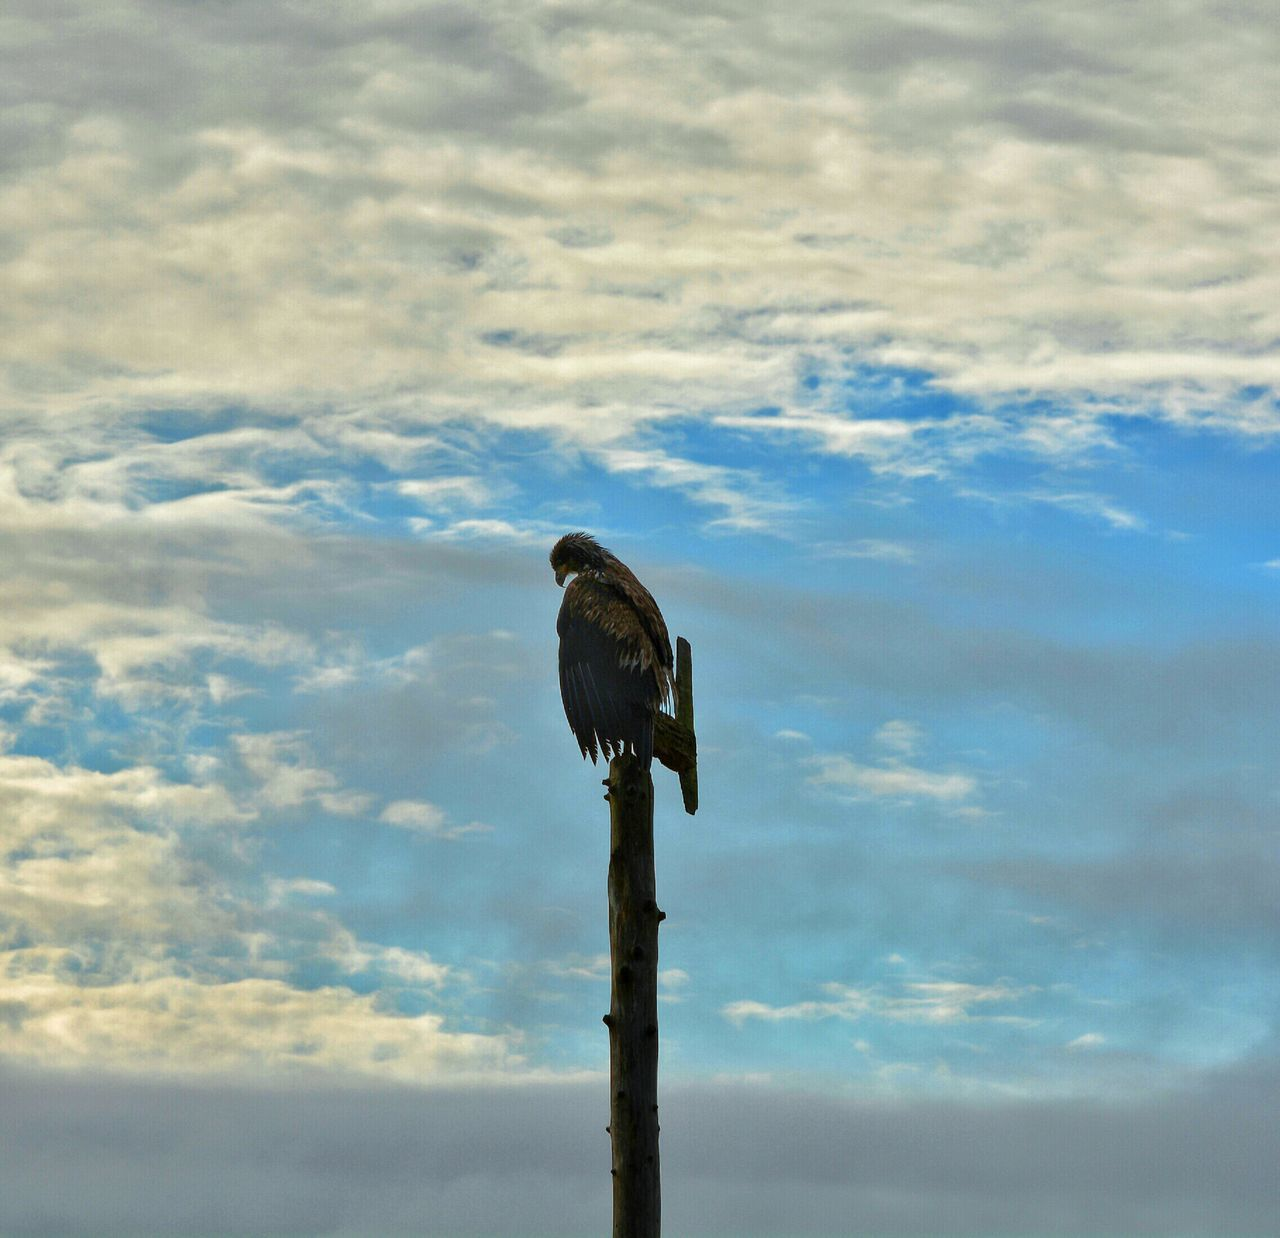 Eagle Perching On Wooden Pole, Sky With Clouds